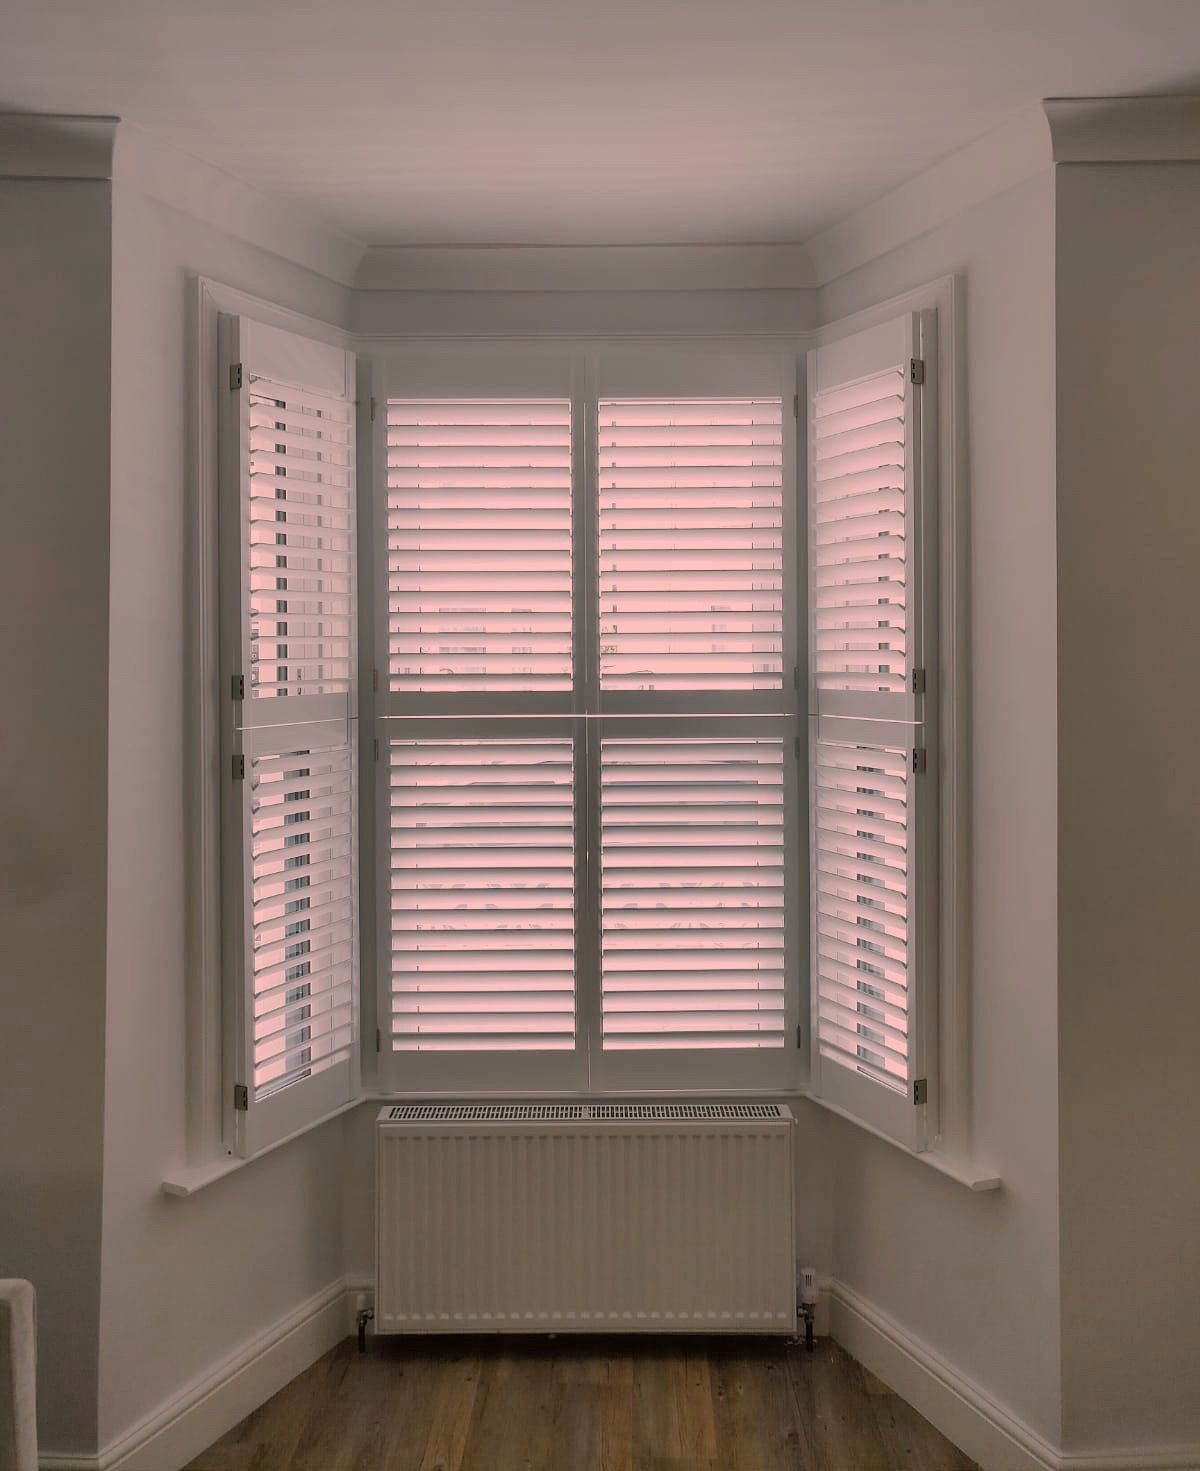 Window Coverings To Keep Heat Out Keep Cool Behind Closed Shutters Bay Window Home